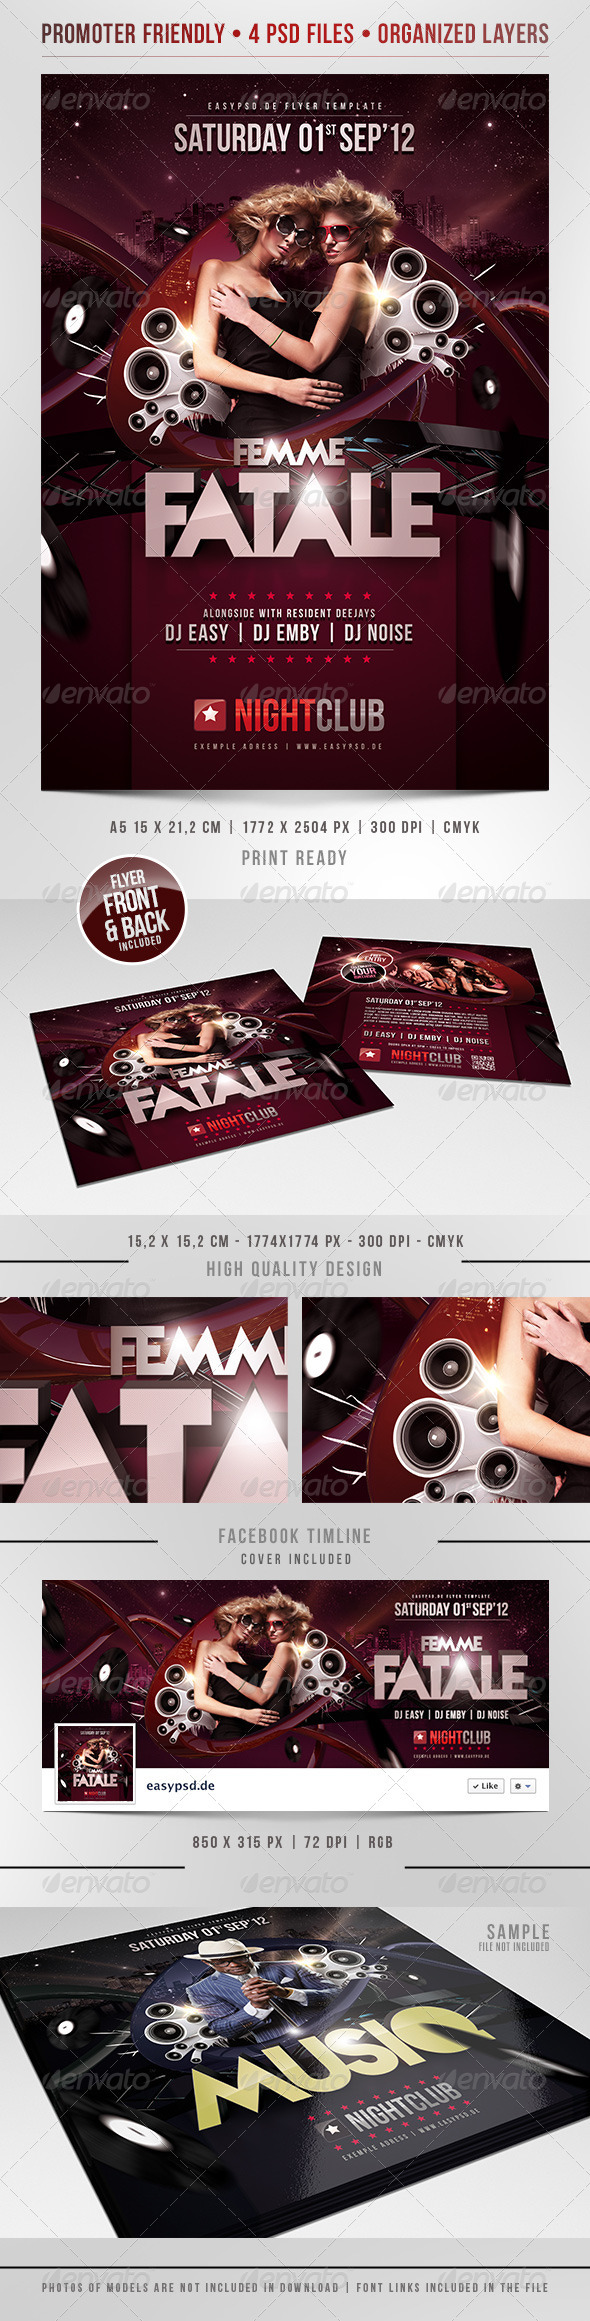 Femme Fatale Flyer Template - Clubs & Parties Events